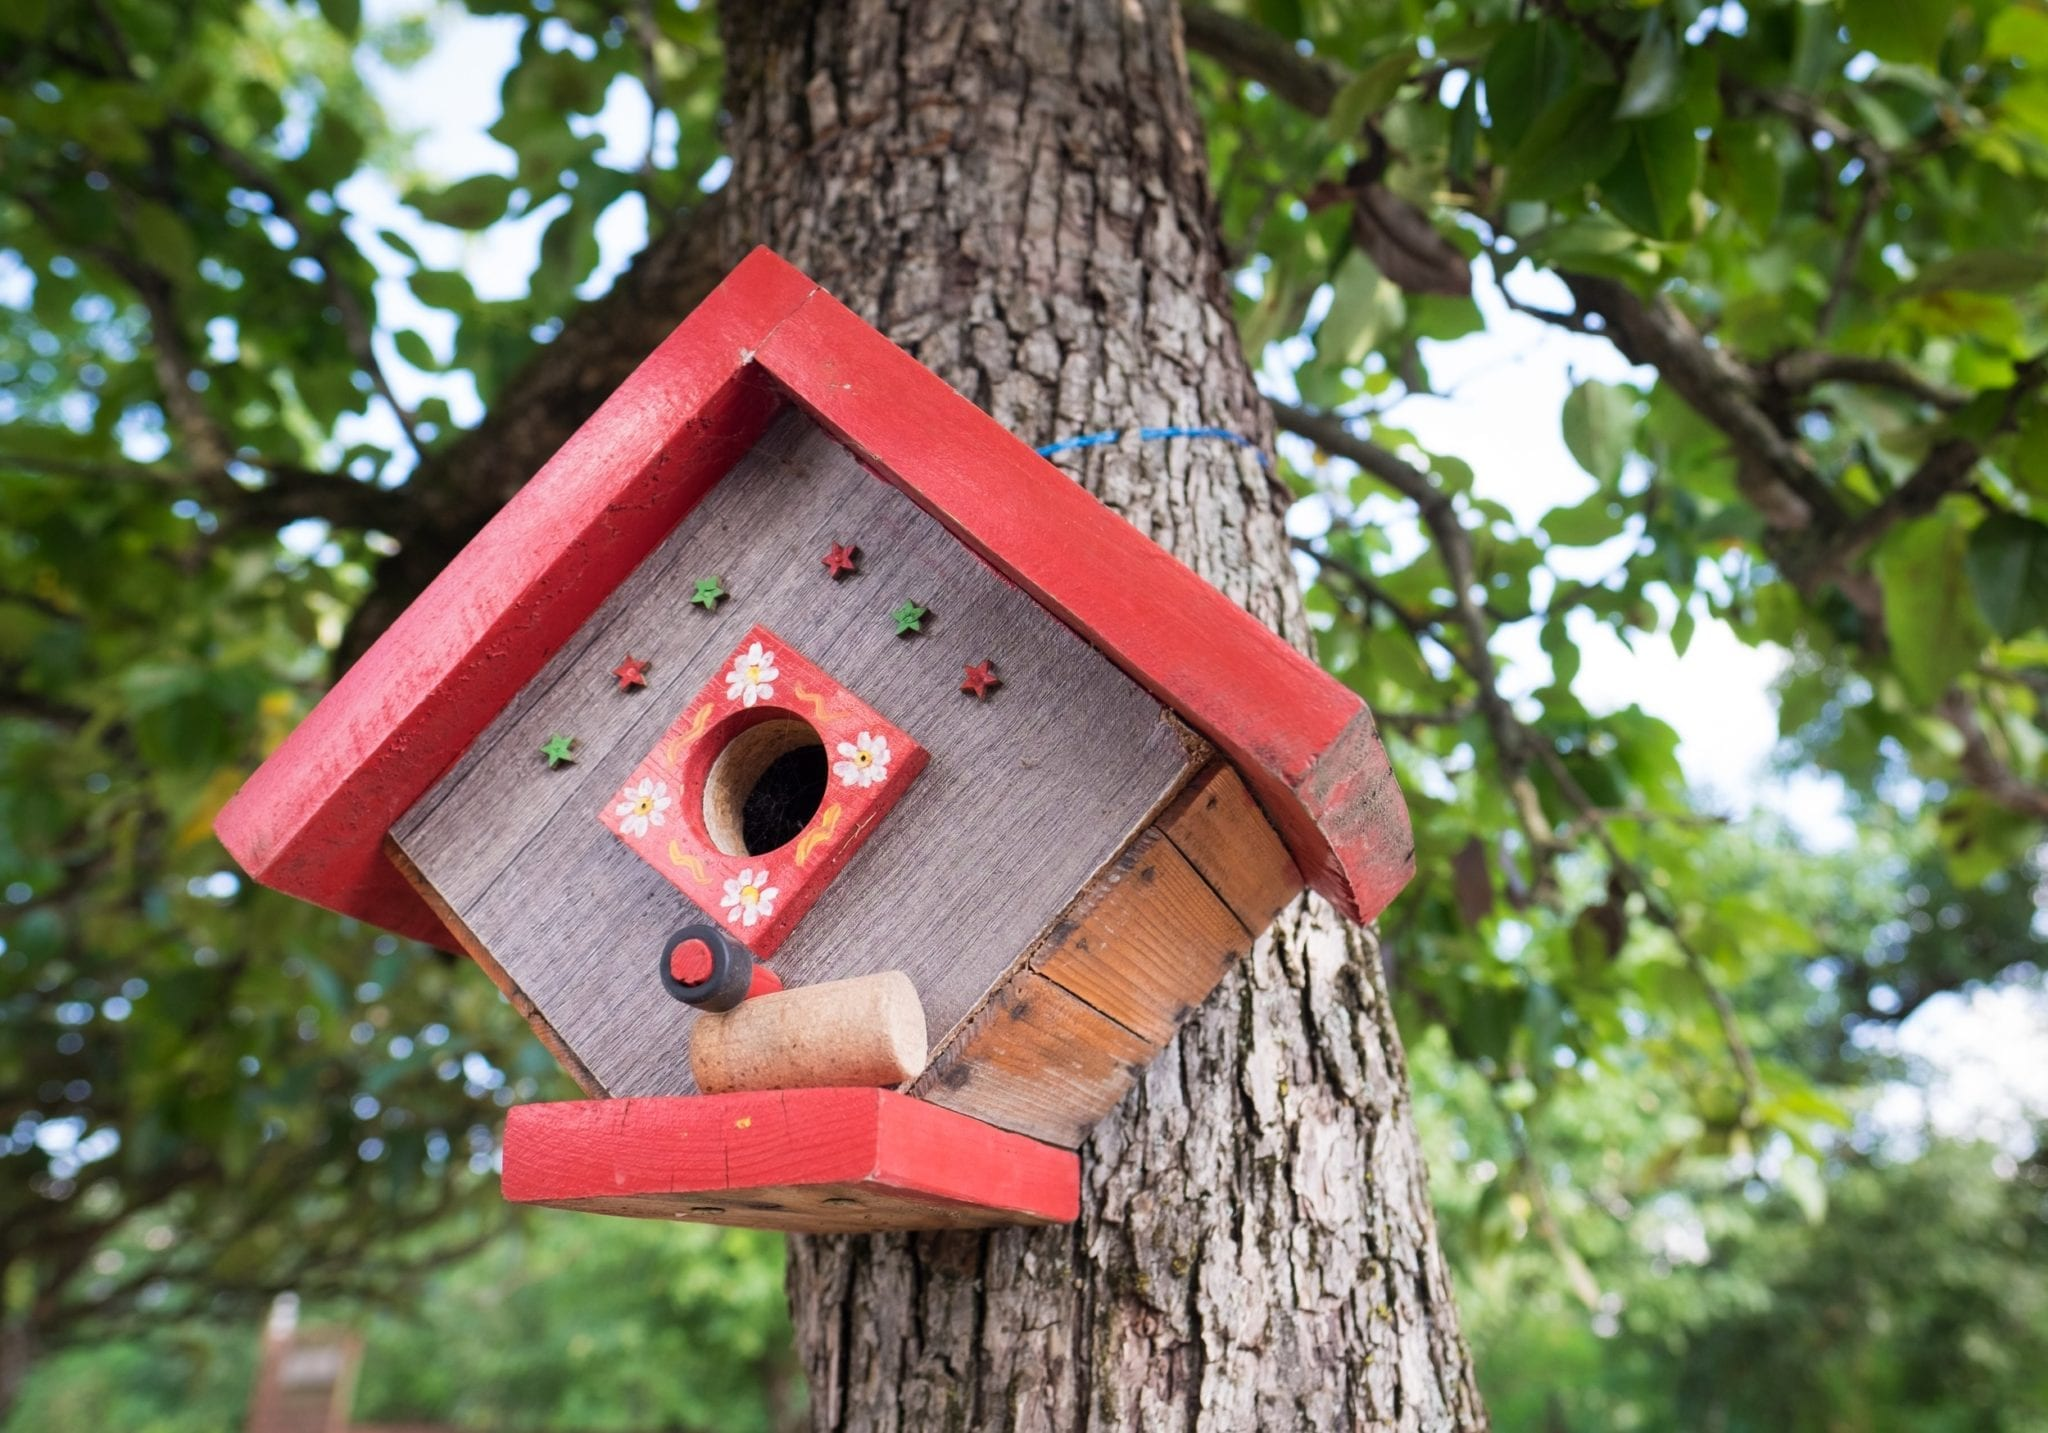 A small wooden birdhouse with bright red trim hammered to a tree in Georgia.